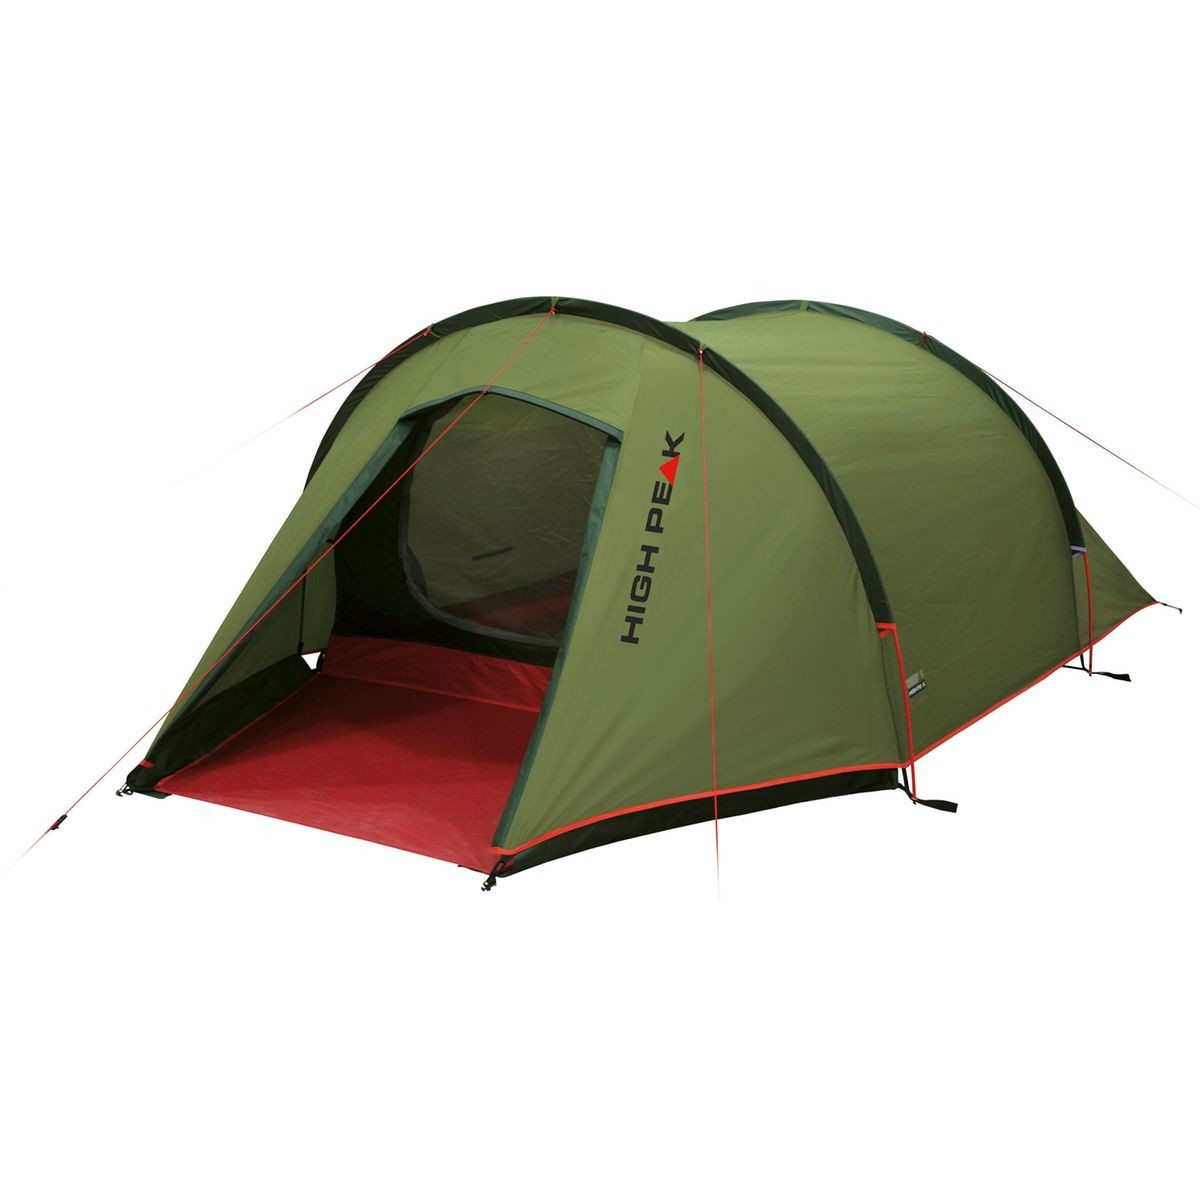 Kite 3 Tente Olive Taille 2 Places Tentes Interieures Camping Tente Tentes